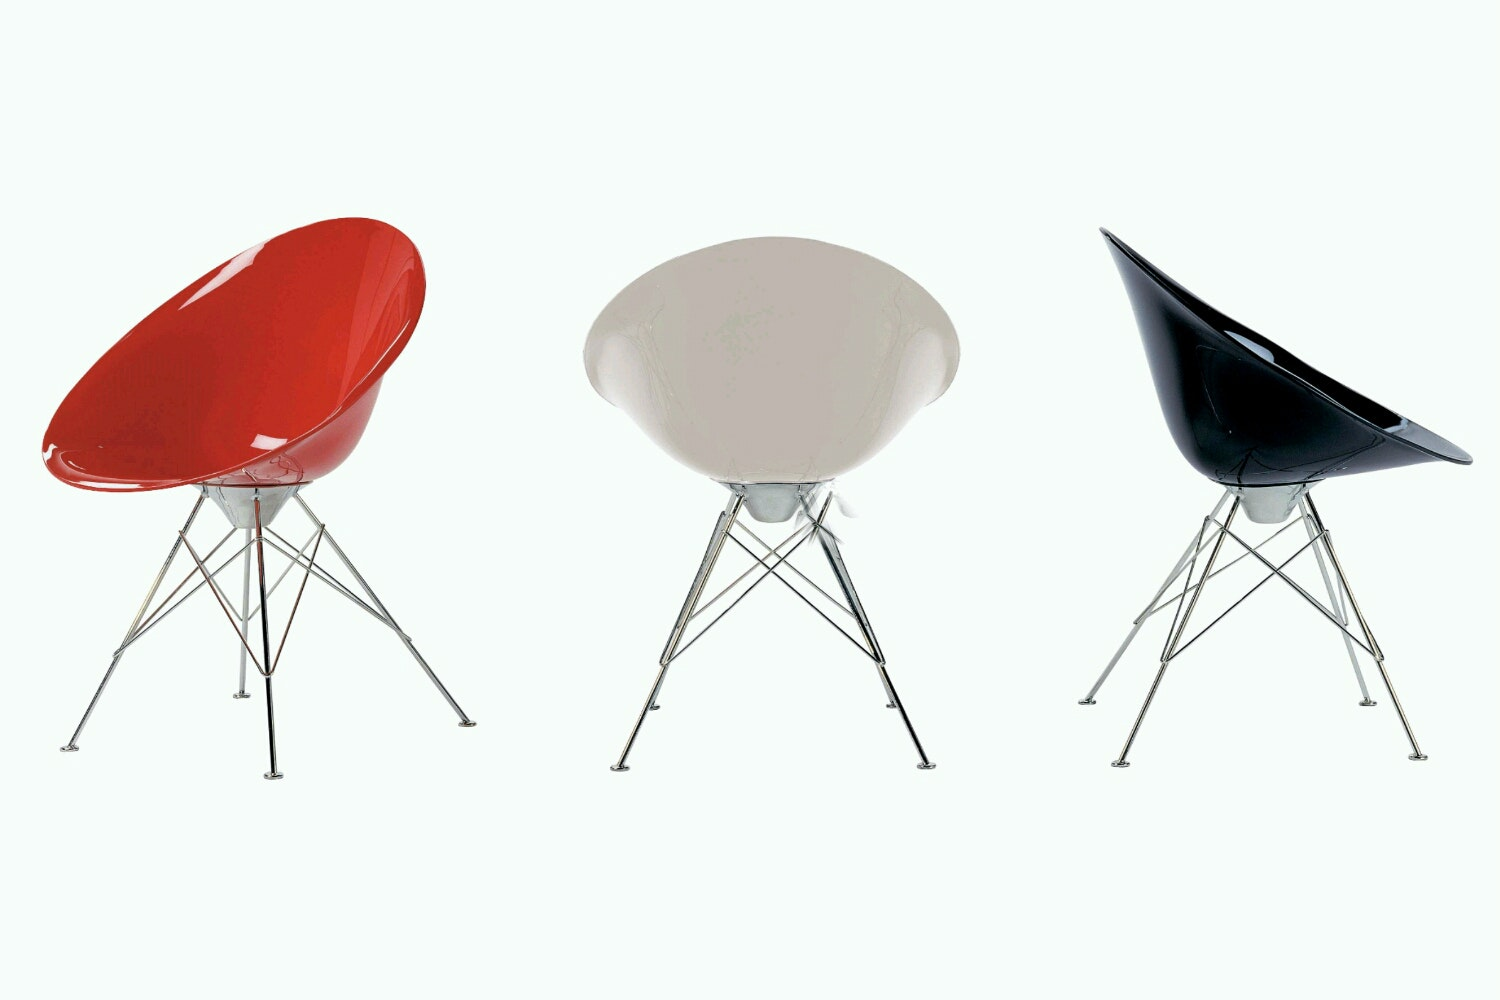 Ero|S| Chair on Feet by Philippe Starck for Kartell